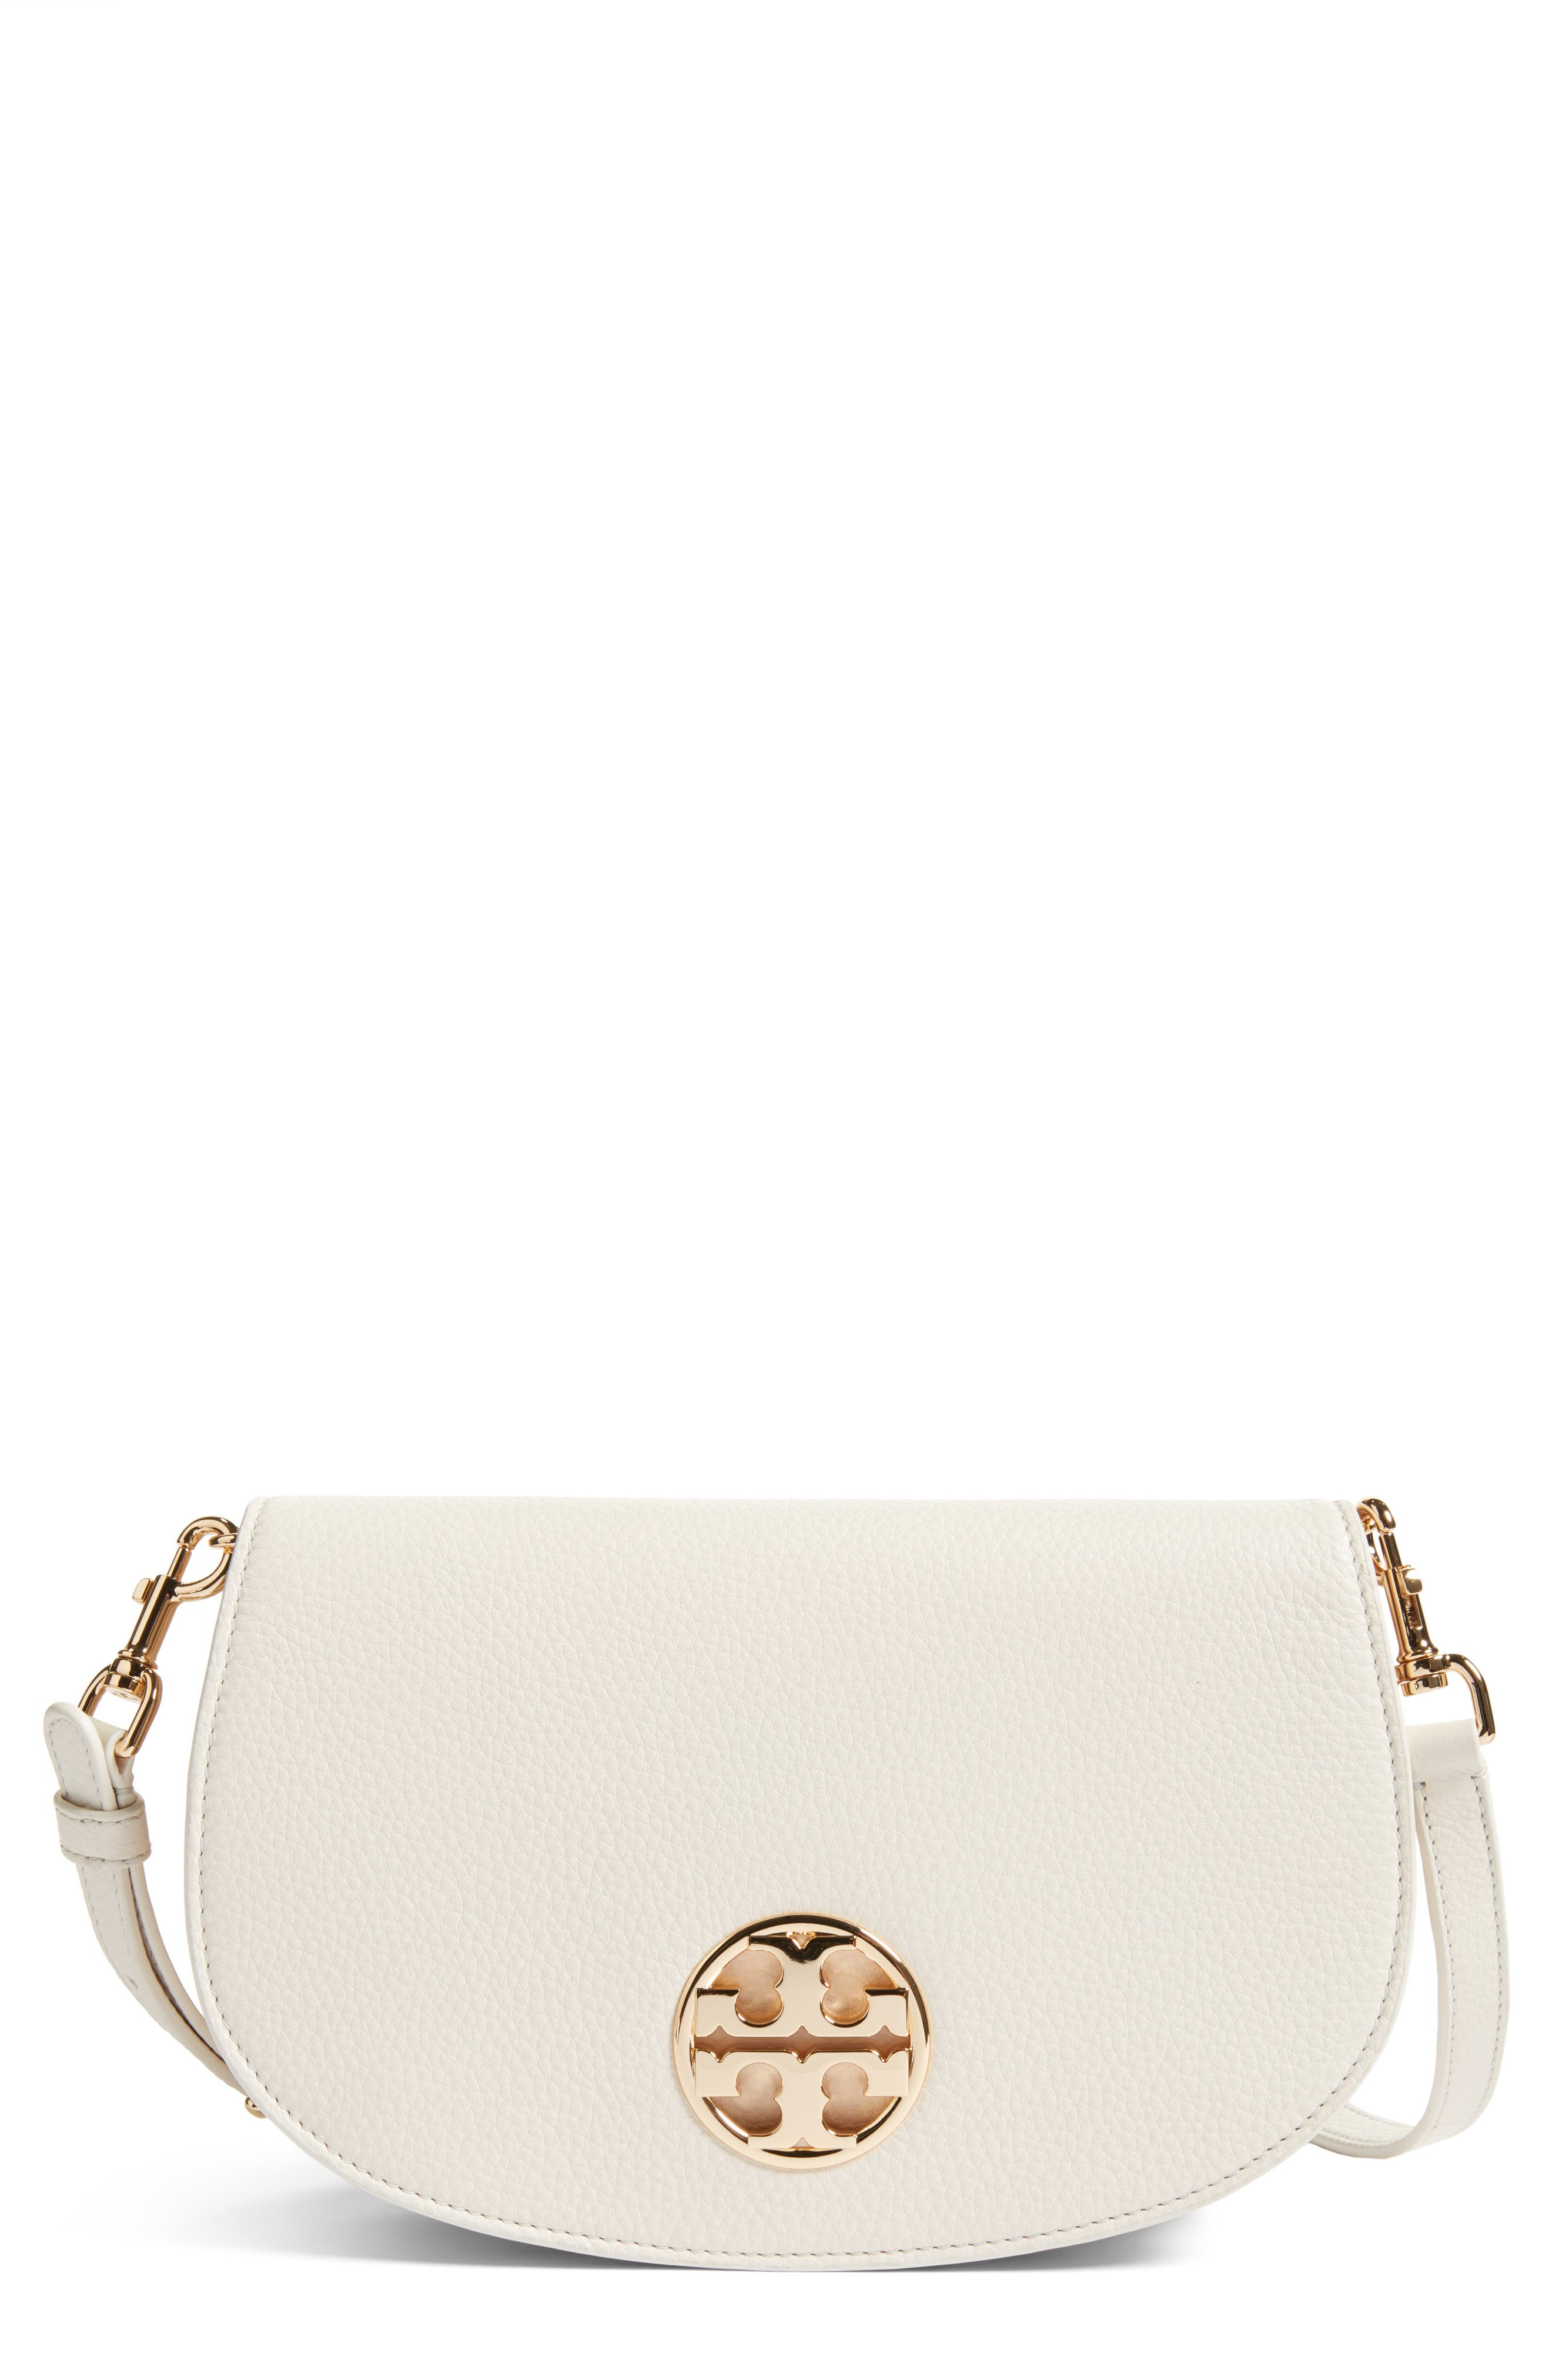 Jamie Convertible Leather Clutch,                             Main thumbnail 1, color,                             104